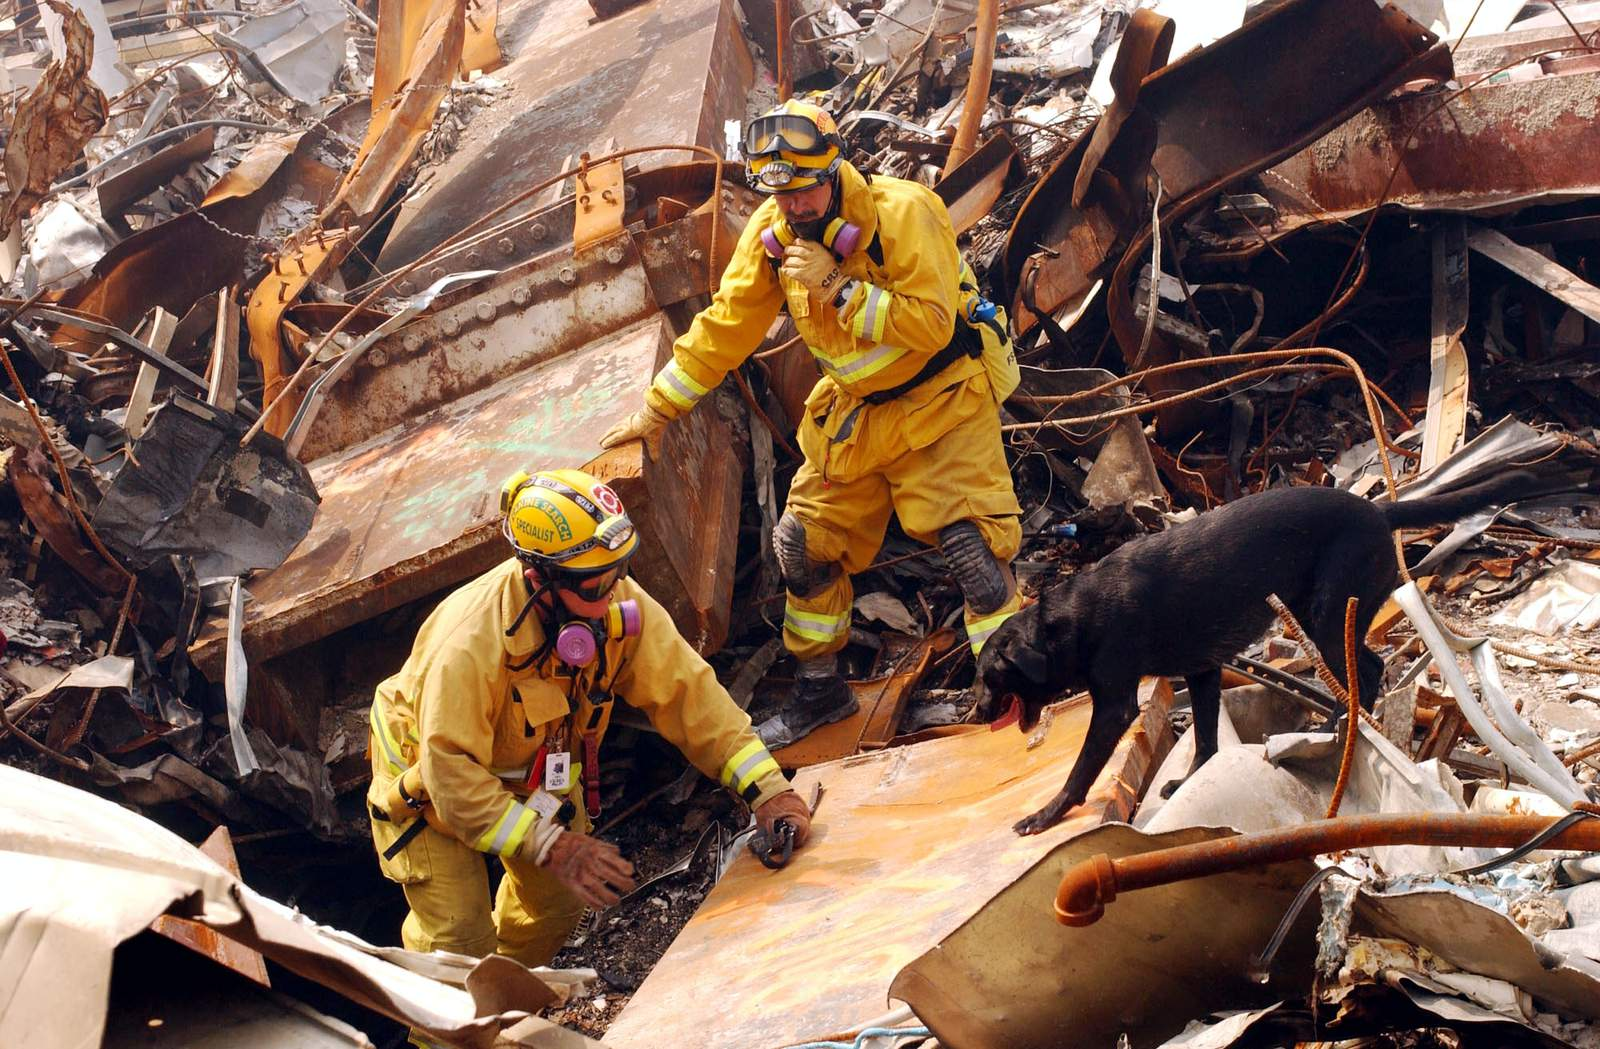 MikeScott from the California Task Force-8 and his dog, Billy, search through rubble for victims.